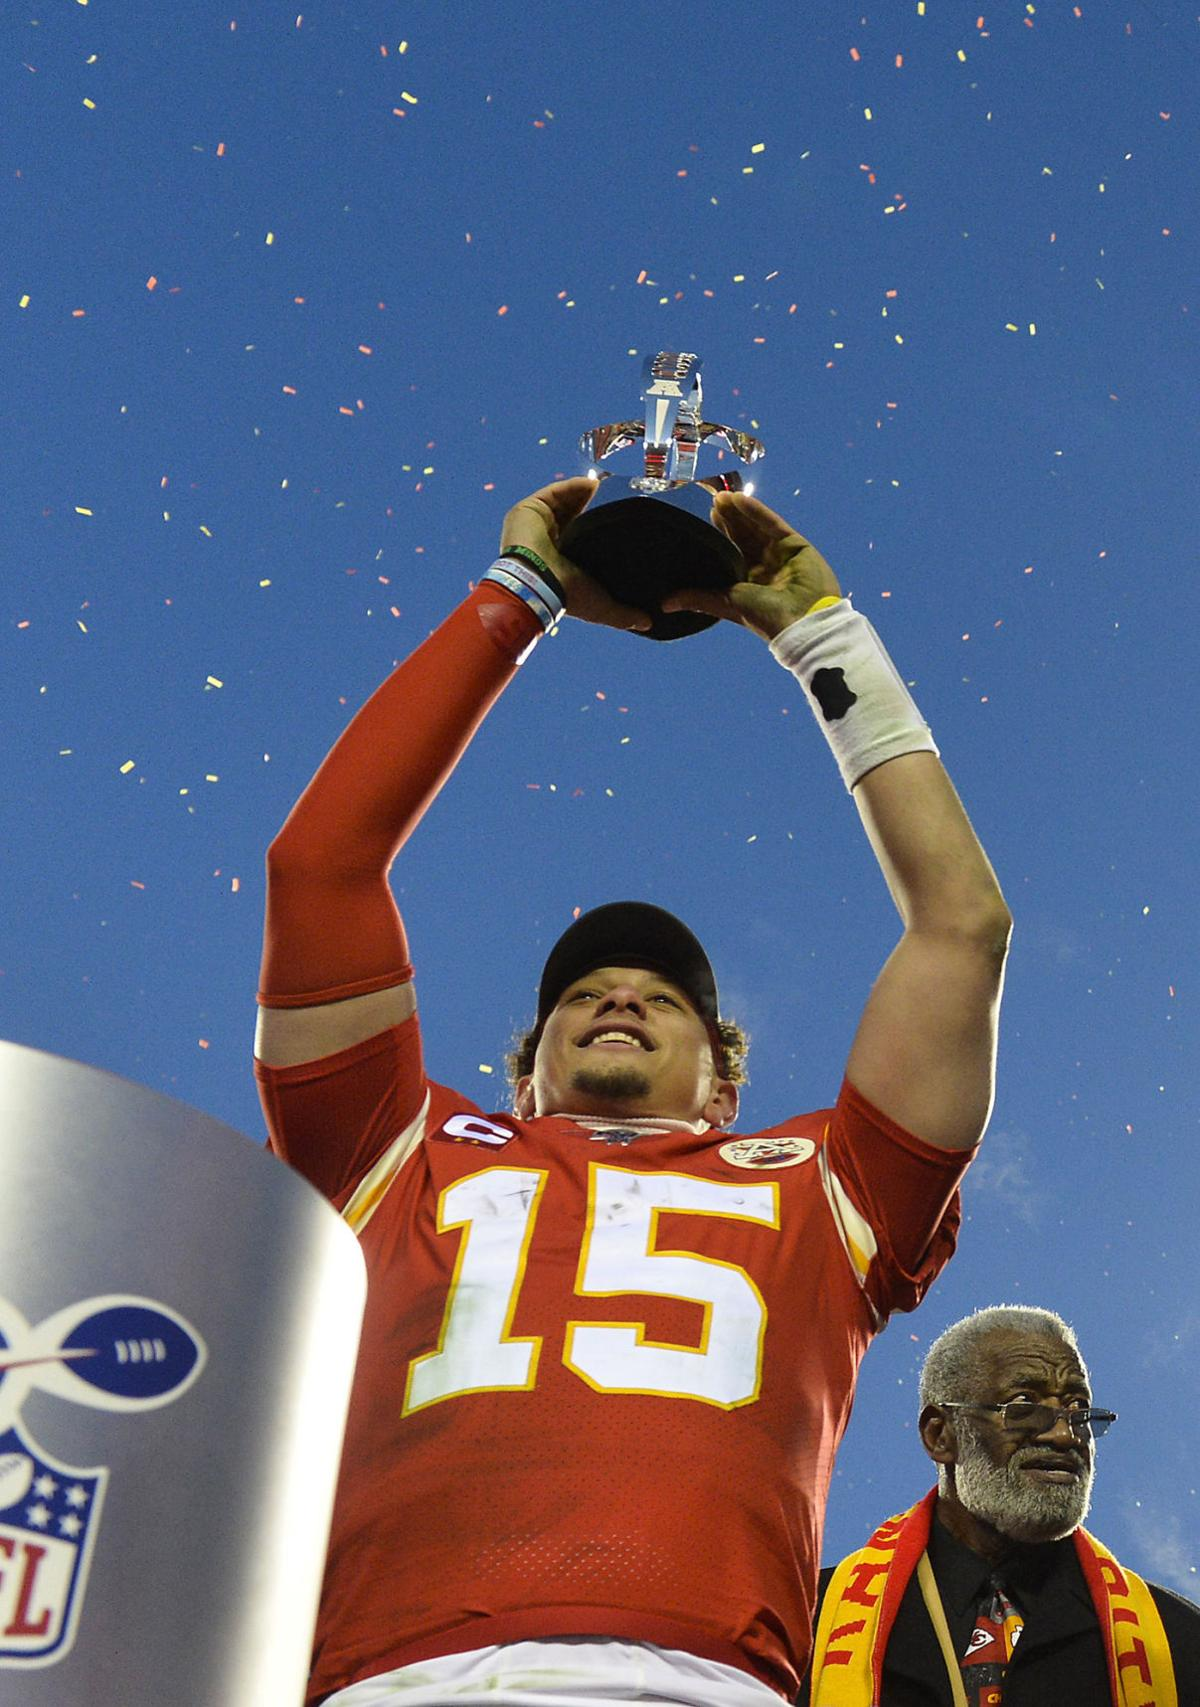 Kansas City Chiefs quarterback Patrick Mahomes hoists the Lamar Hunt AFC Championship trophy over his head after a 35-24 win against the Tennessee Titans in the conference championship game on January 19, 2020, at Arrowhead Stadium in Kansas City, Mo.